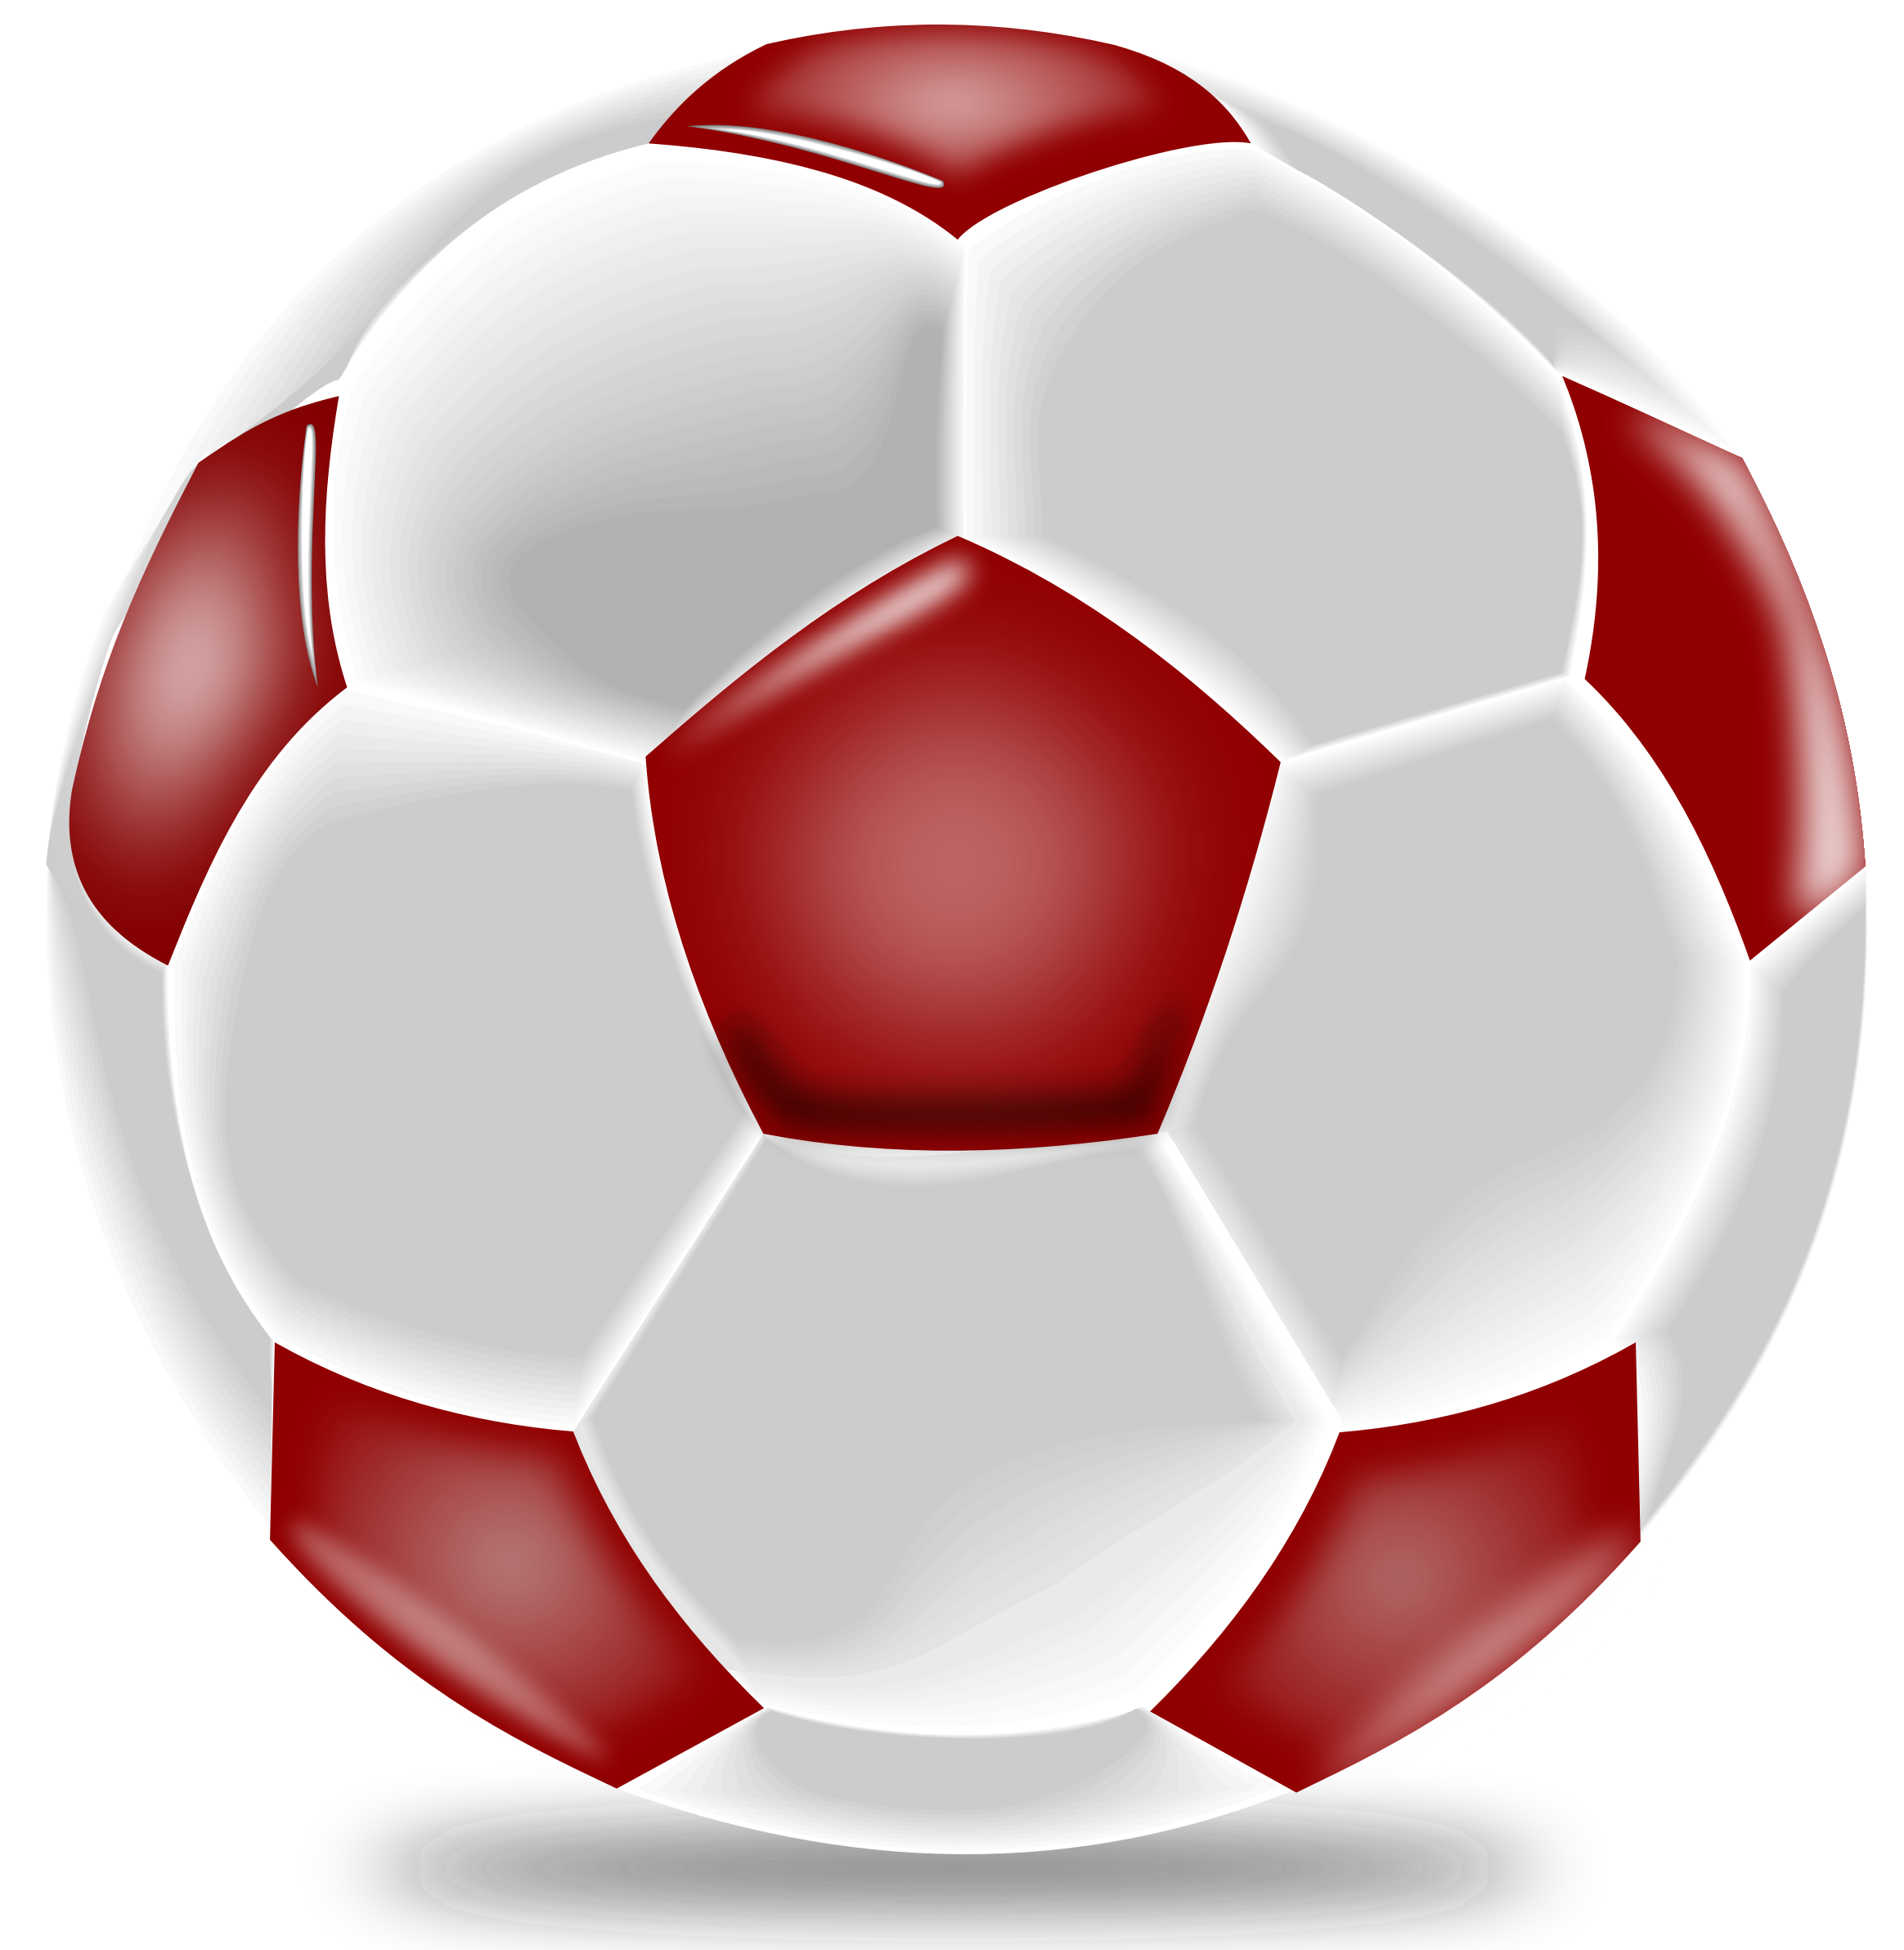 Realistic ball by ilnanny. Hearts clipart soccer